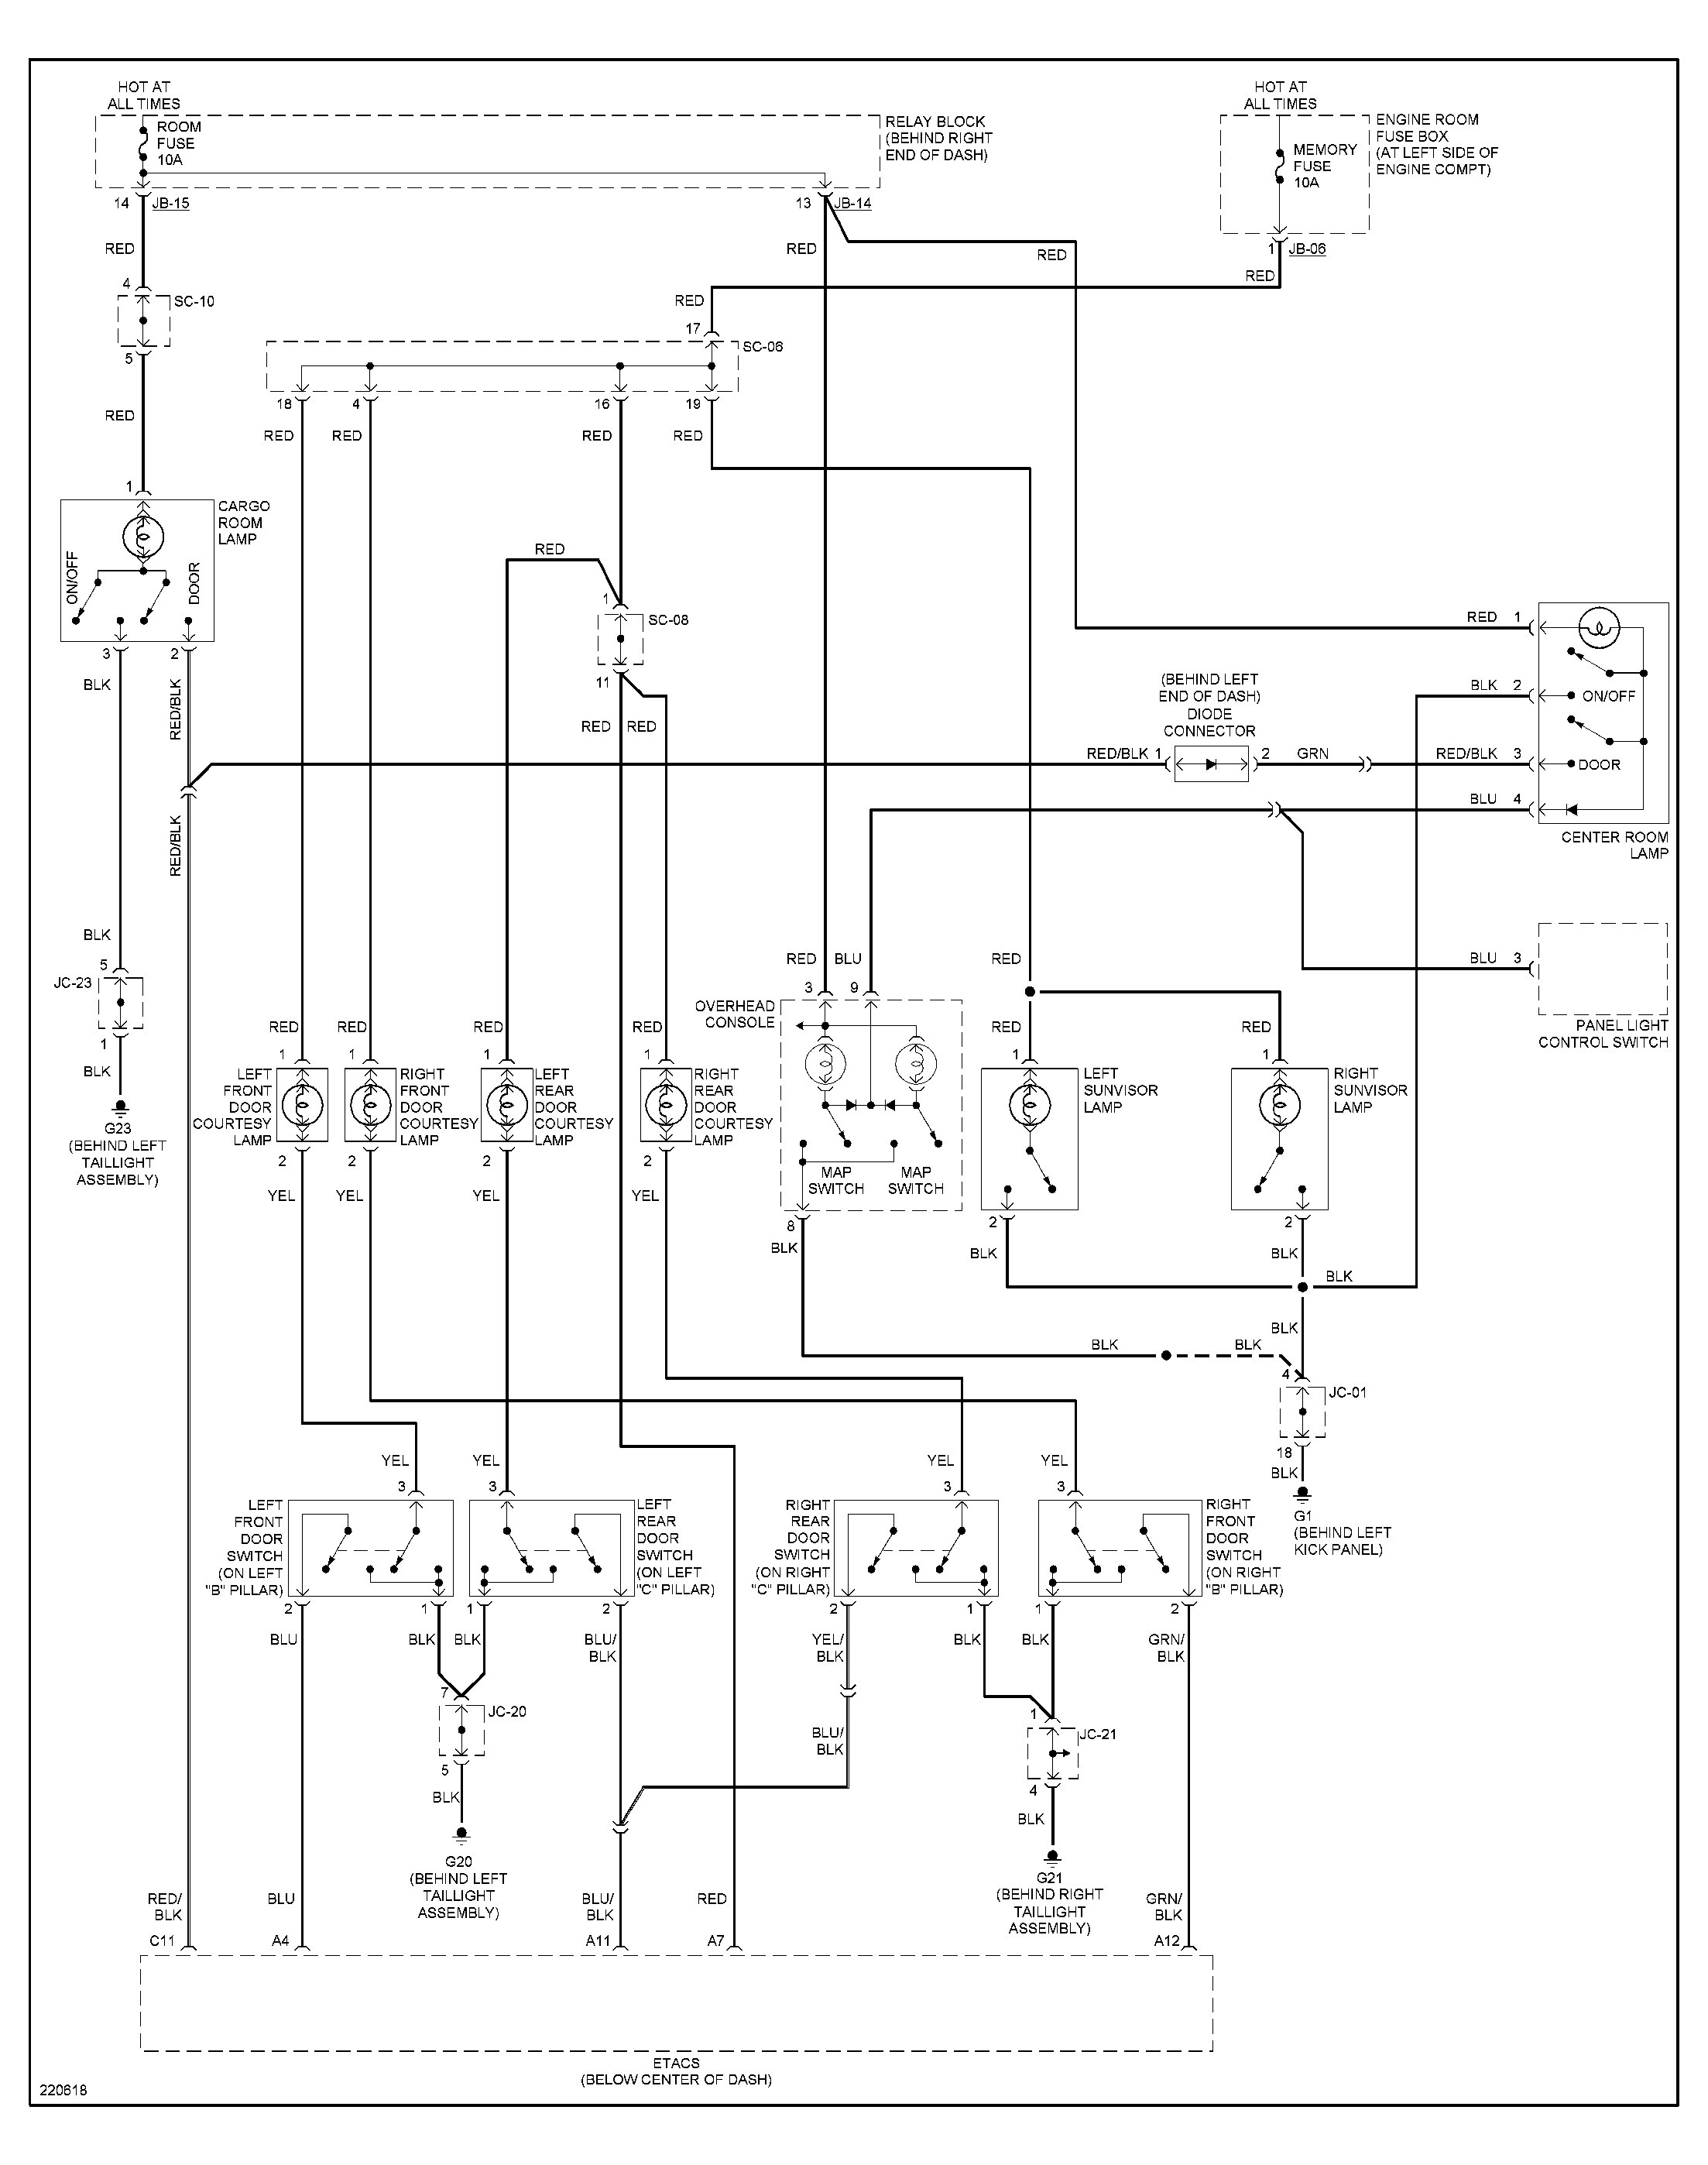 2003 Kium Spectra Engine Diagram